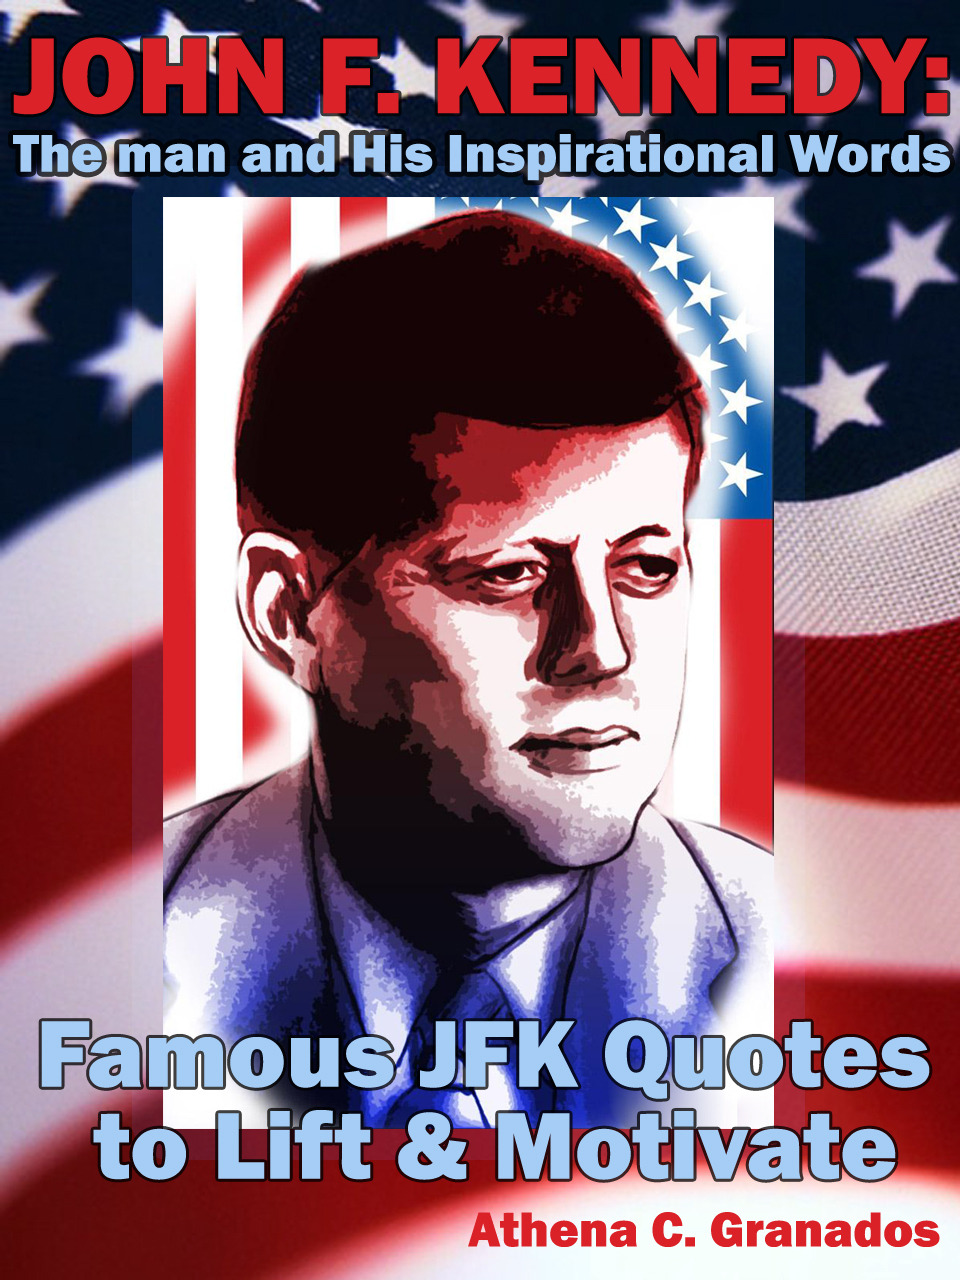 John F Kennedy: The man and His Inspirational Words Famous JFK Quotes to Lift & Motivate